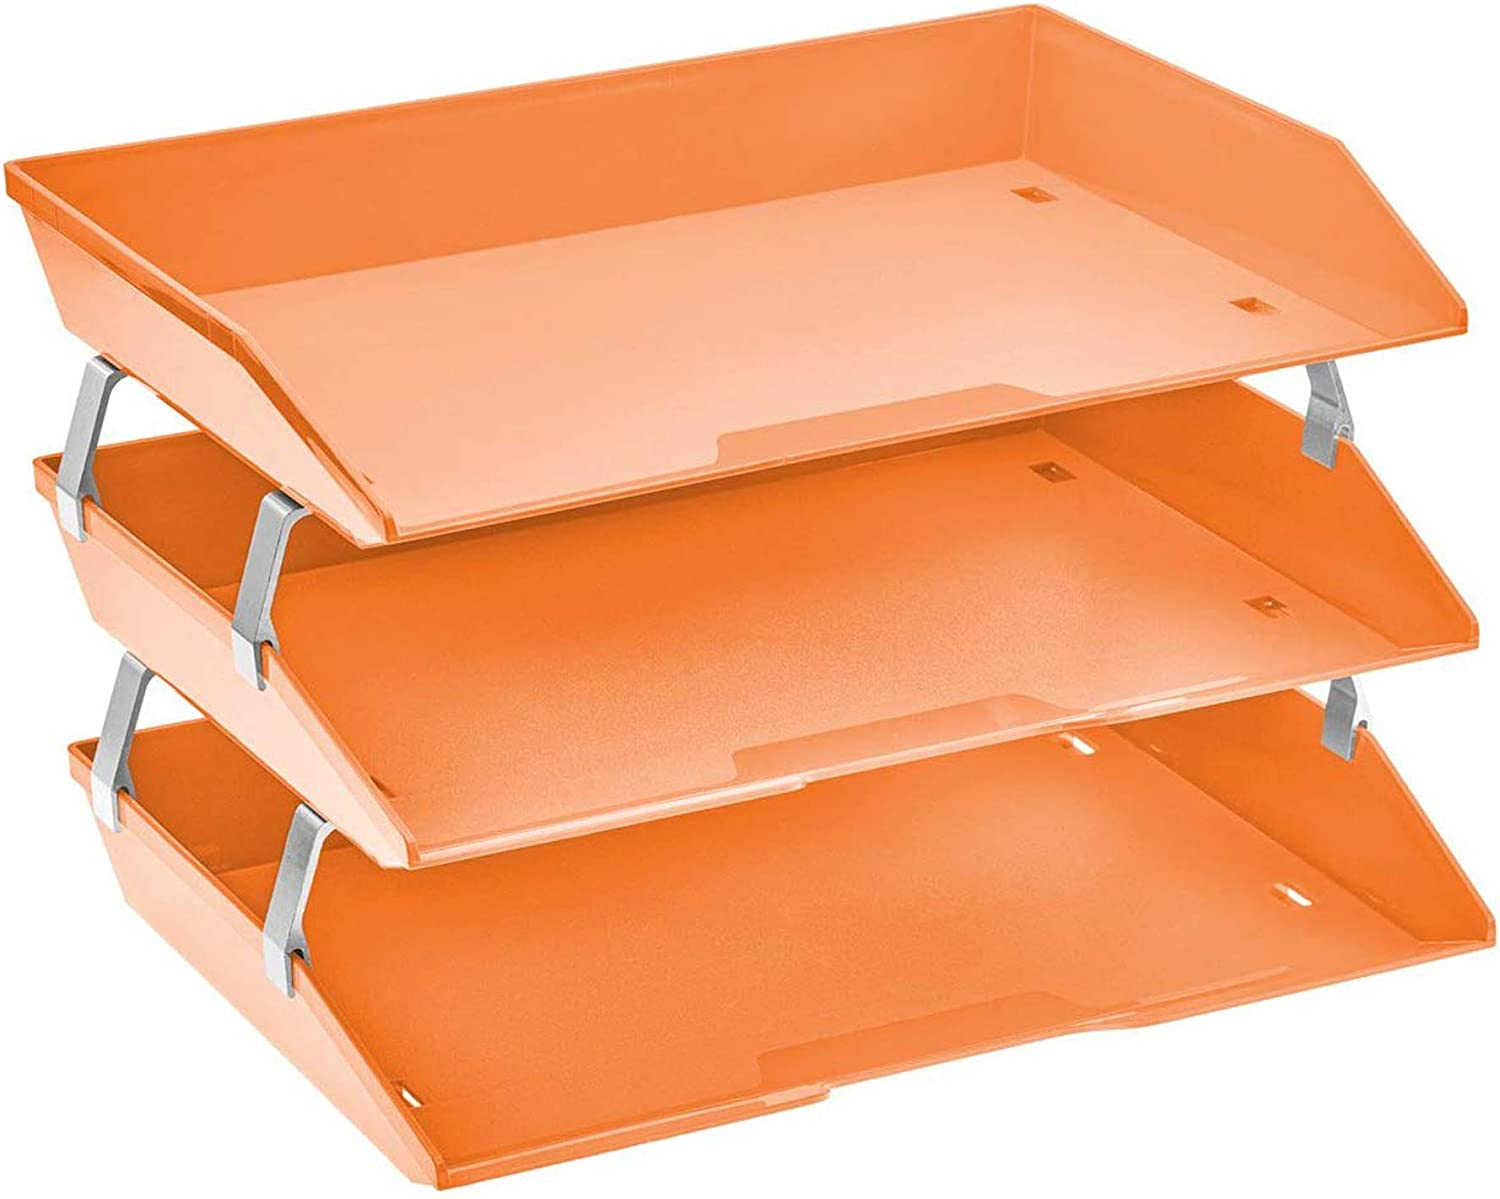 Acrimet Facility 3 Tier Letter Tray Side Load Plastic Desktop File Organizer (Orange Color)